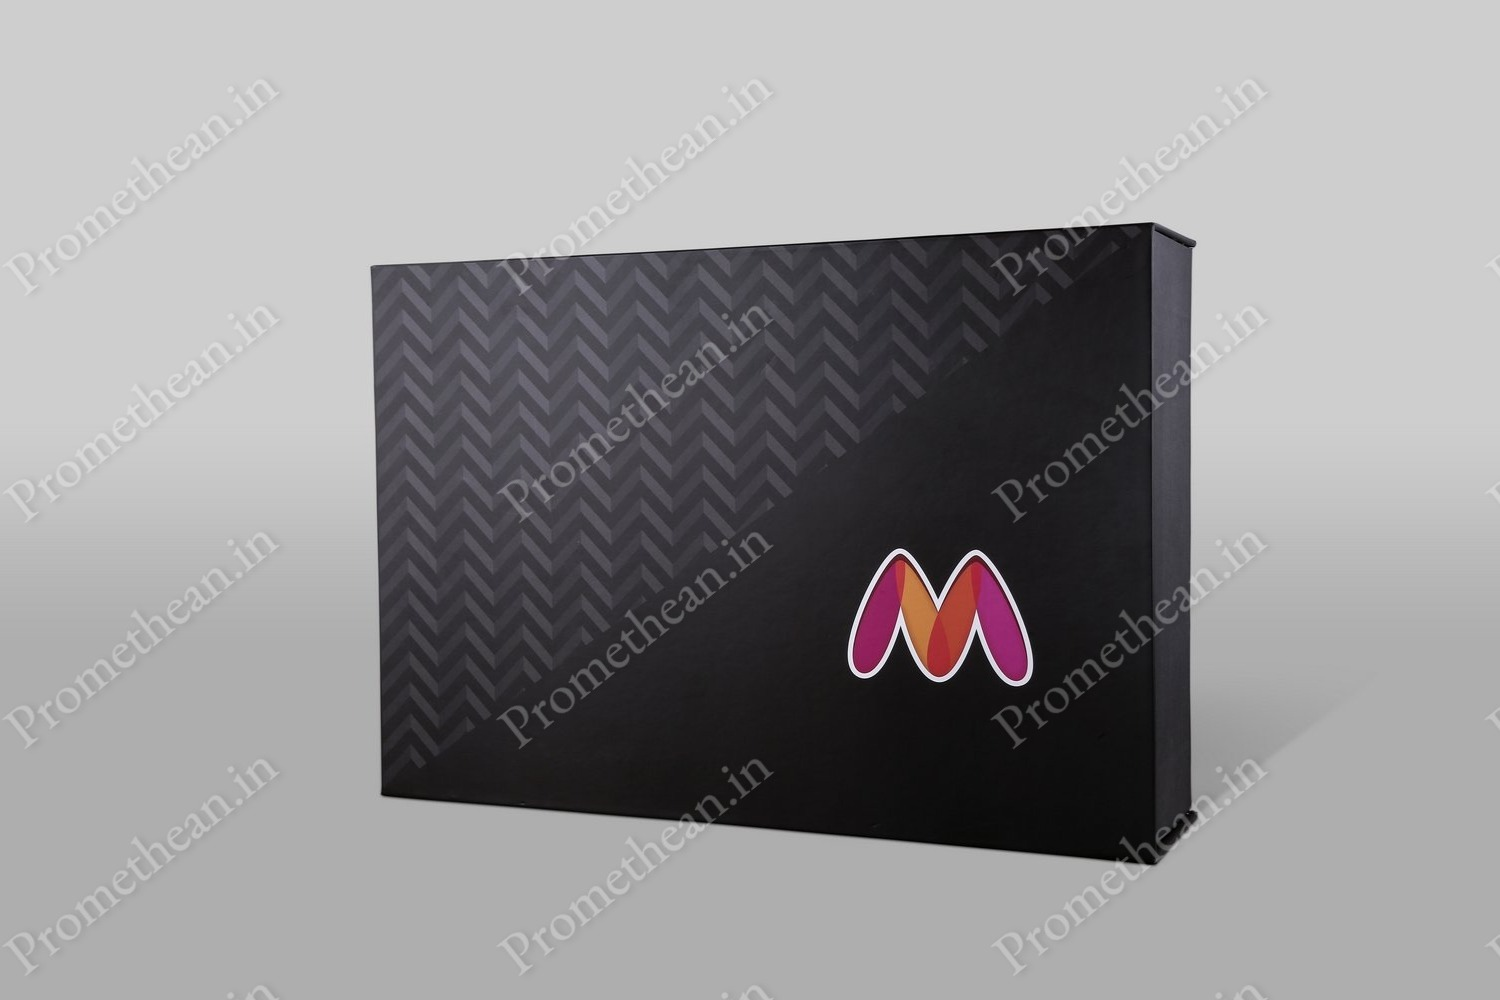 Myntra Influencer Box